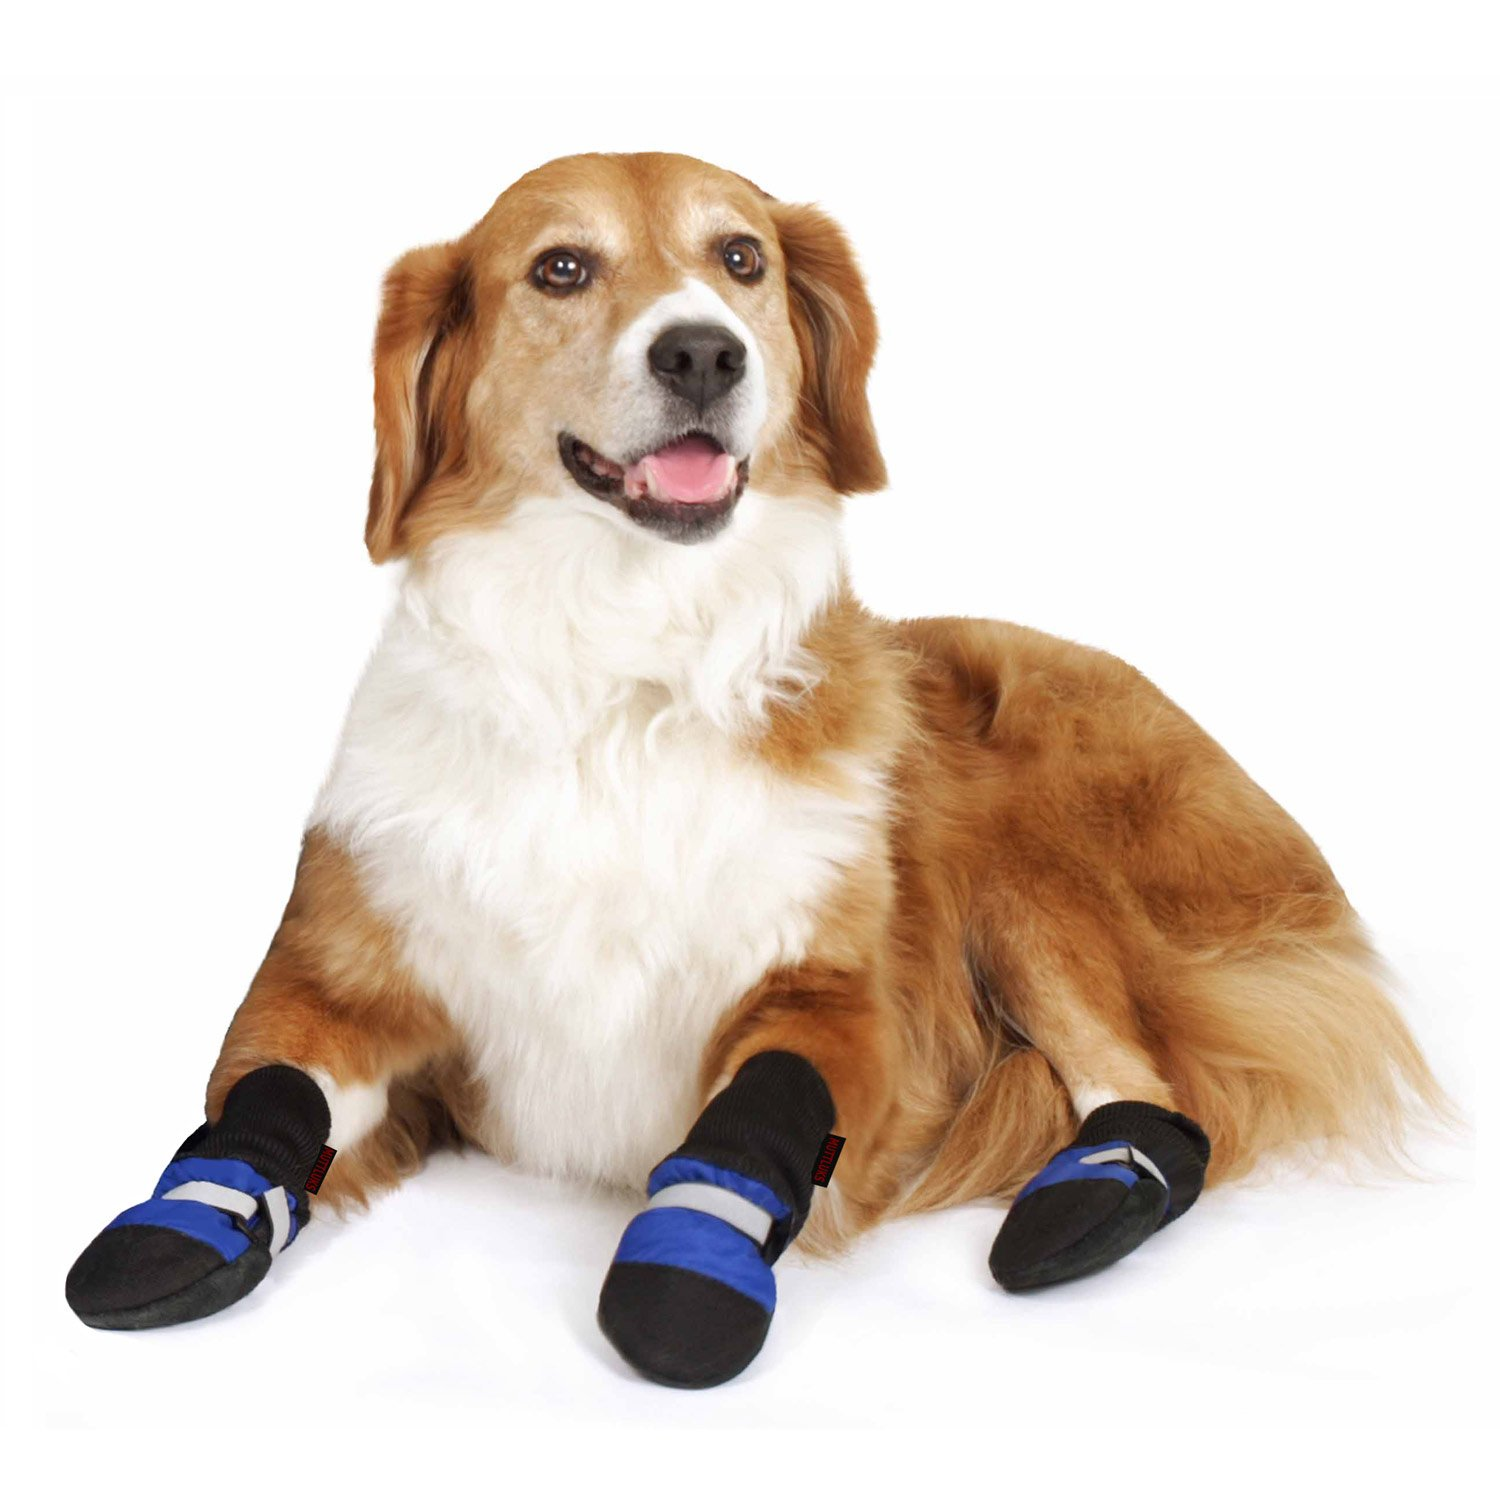 Videos Of Dogs Walking With Dog Shoes On